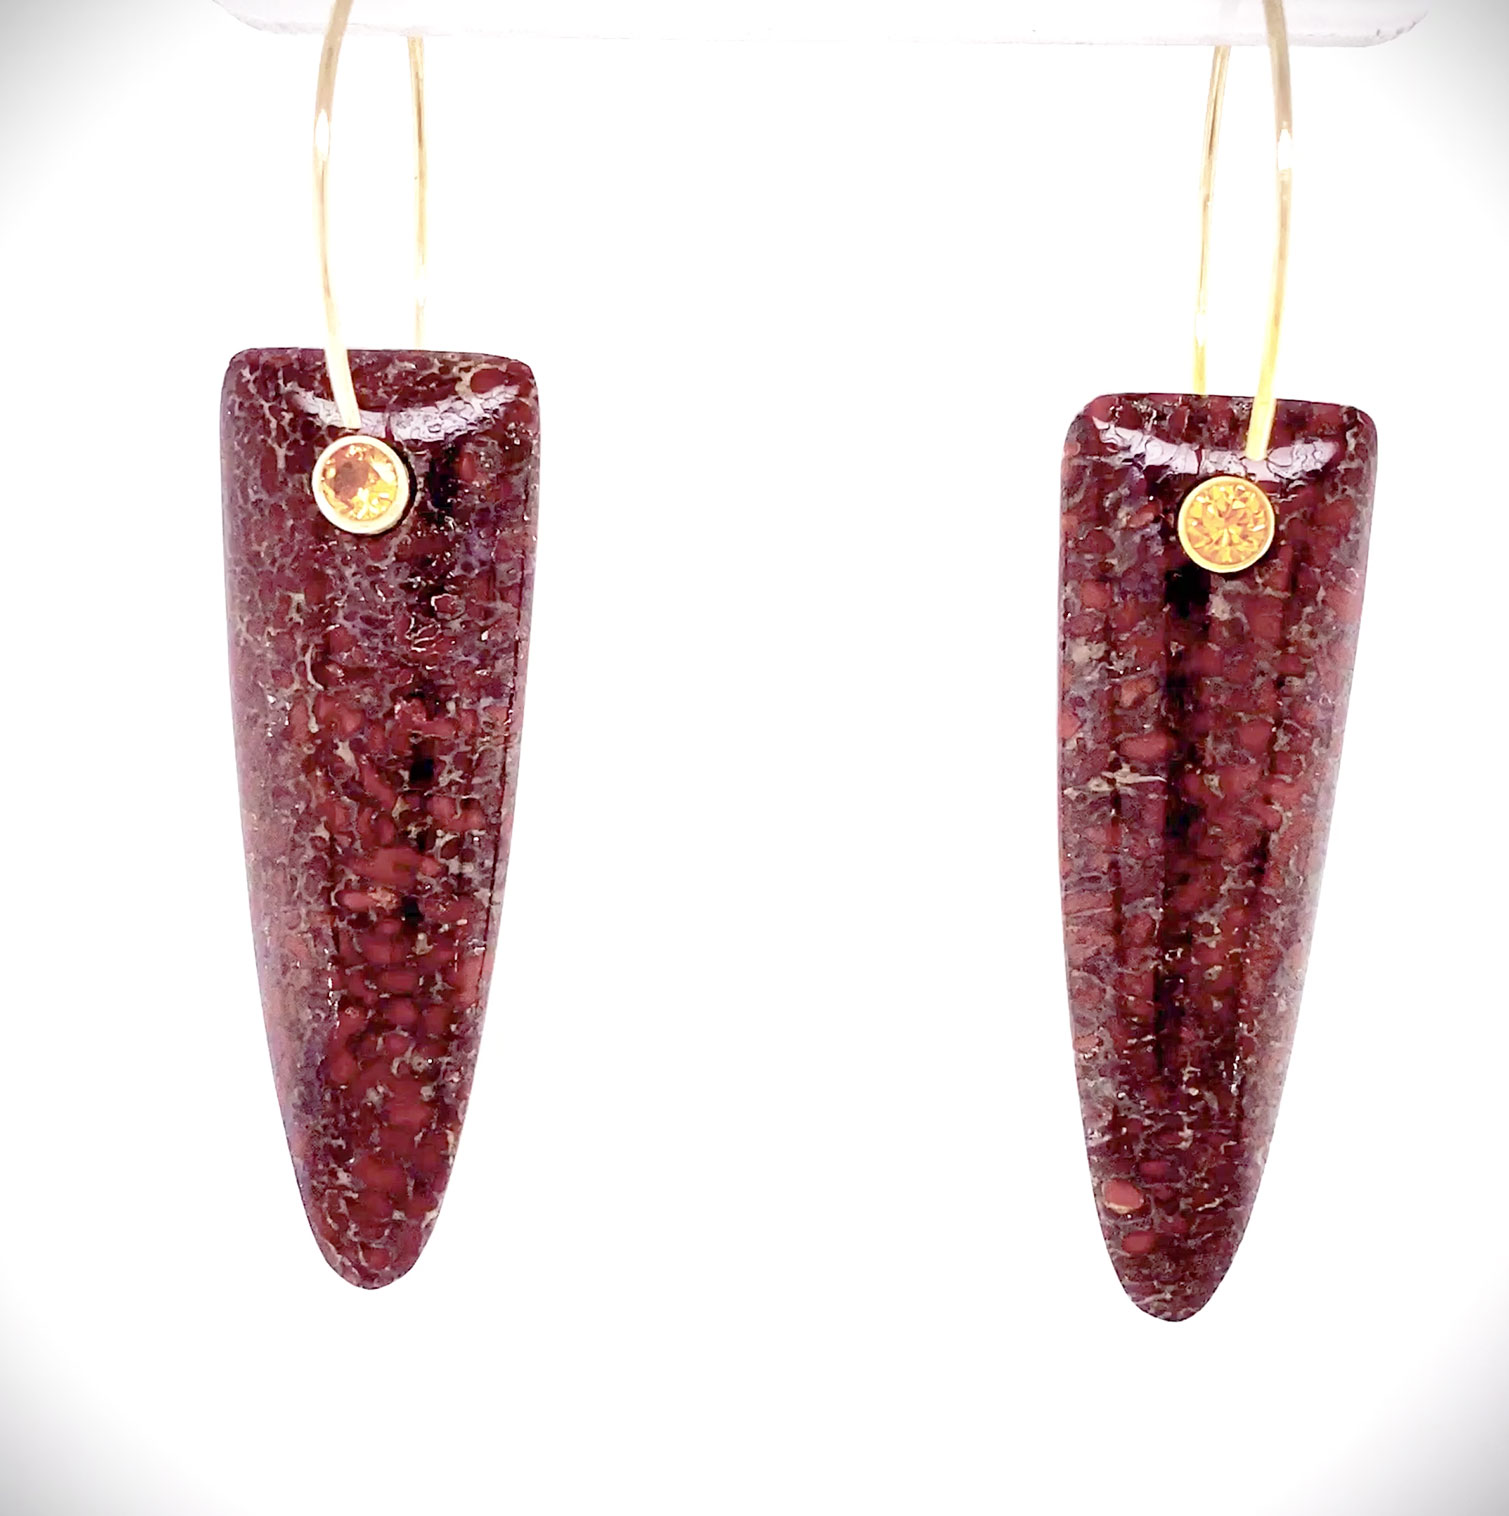 Fossilized Red Dinosaur Bone earrings accented with Golden Sapphire brilliants